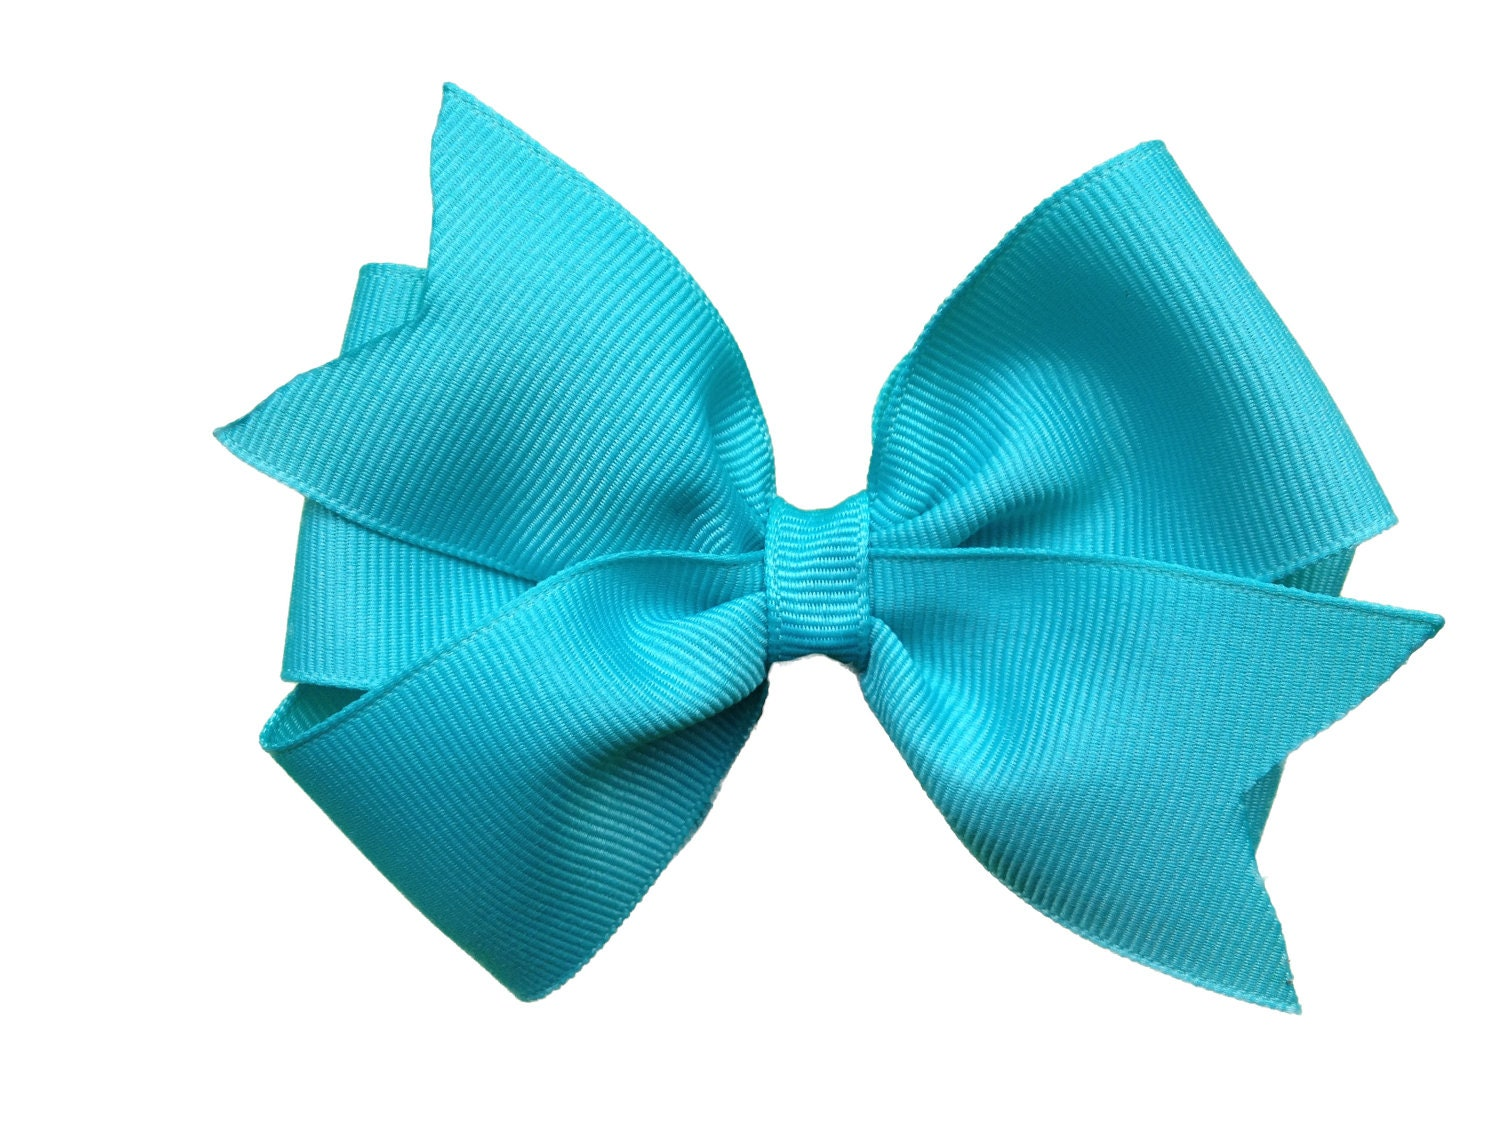 4 Inch Turquoise Hair Bow Turquoise Bow Hair Bows Girls